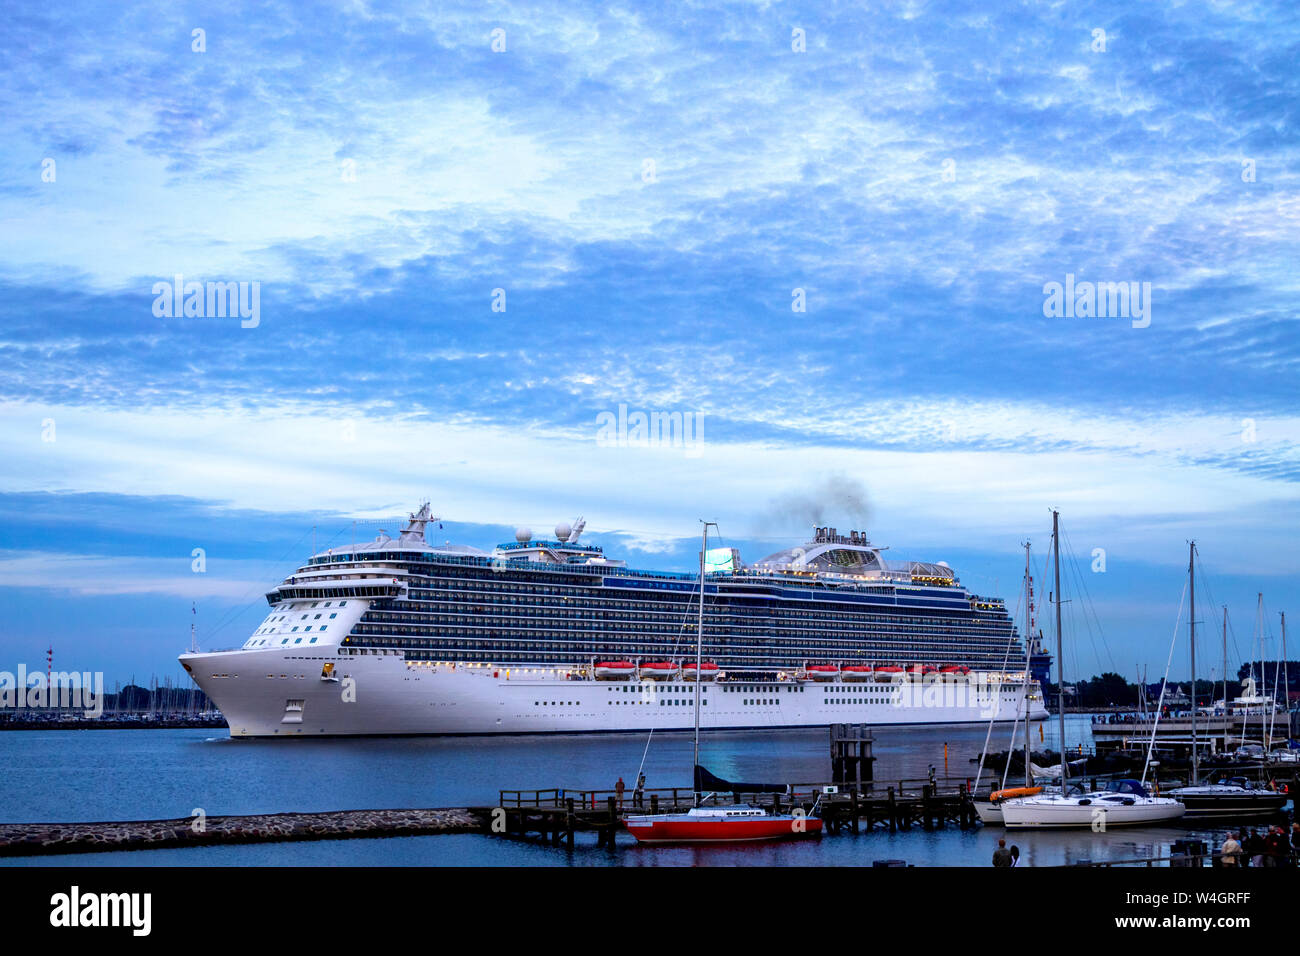 Cruise liner, Warnemuende, Rostock, Germany Stock Photo